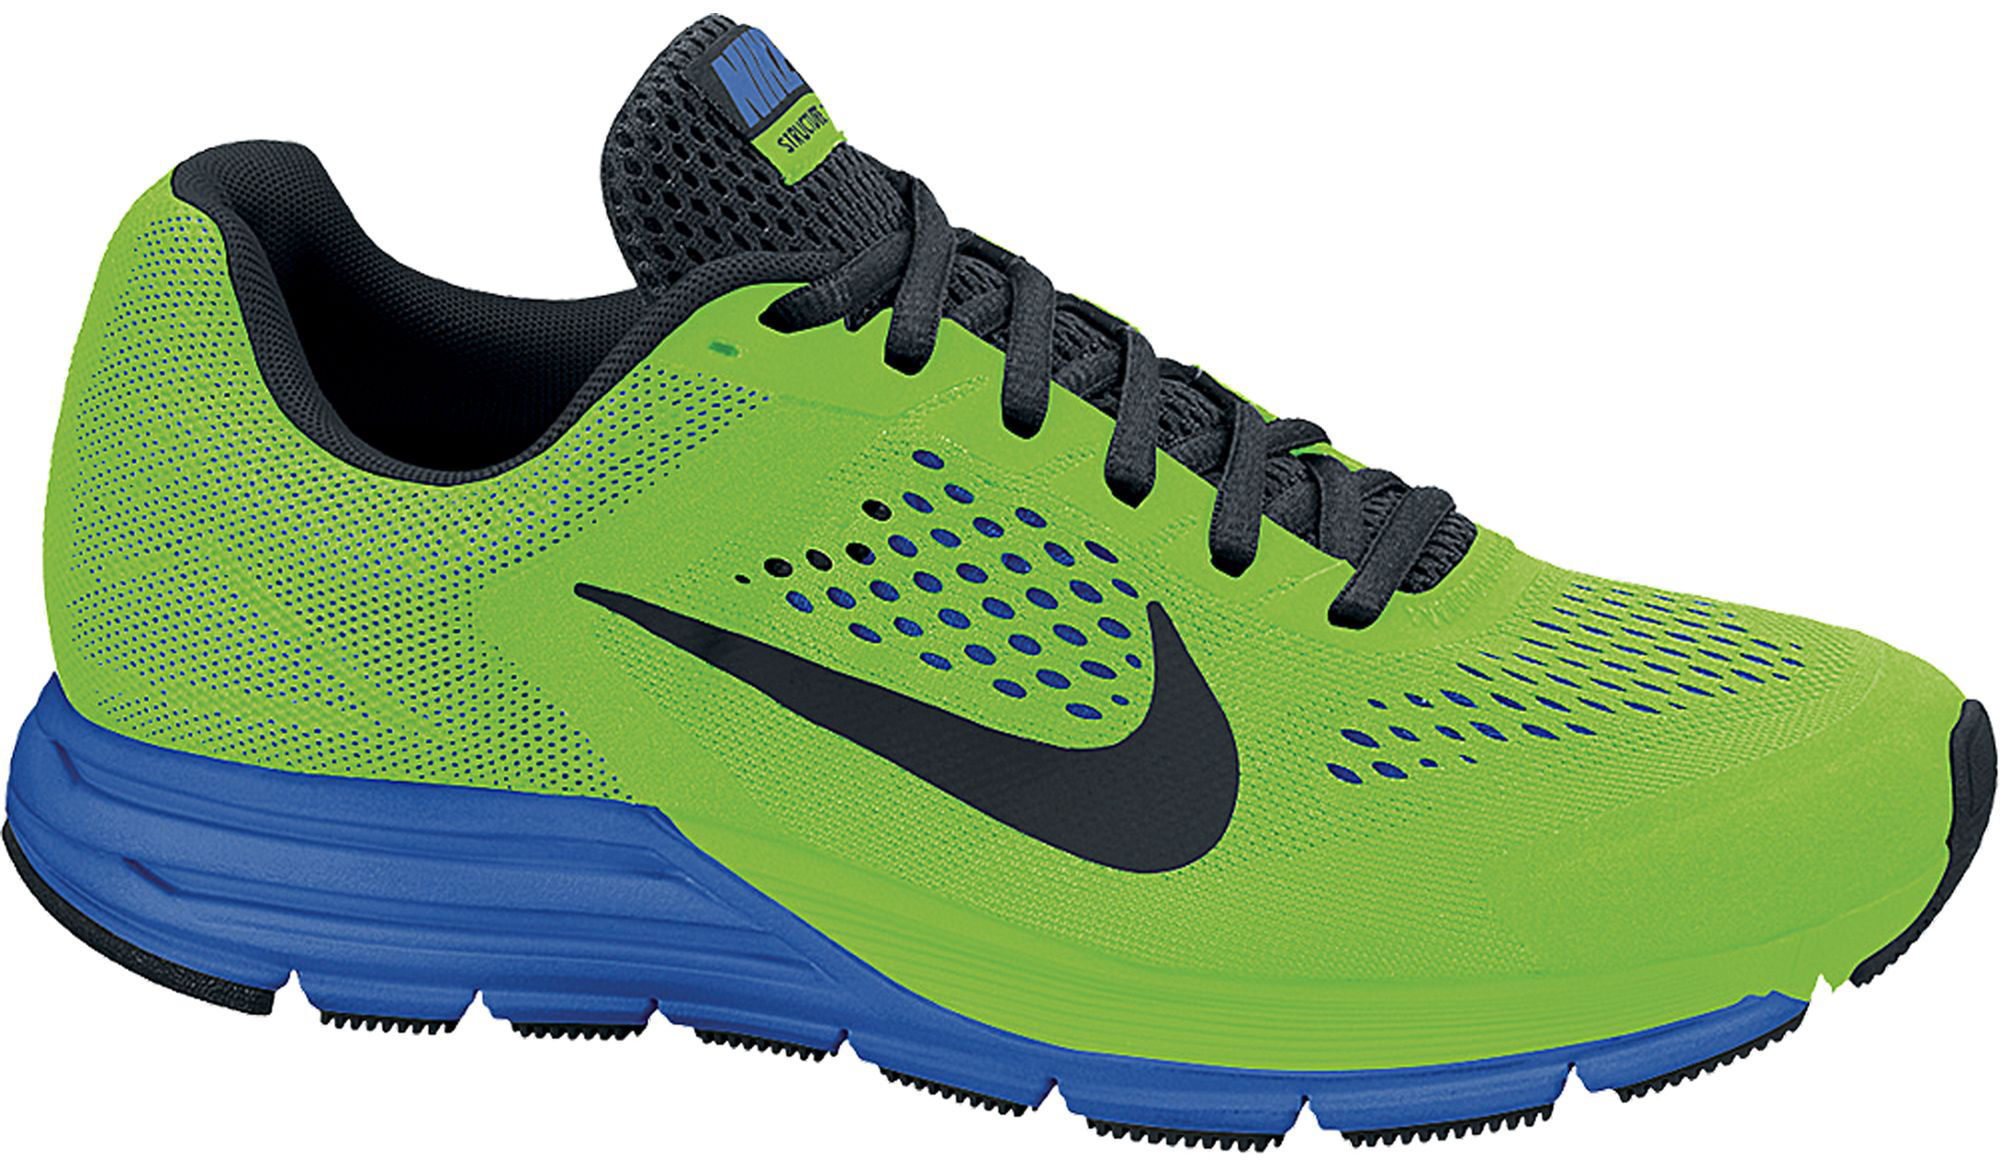 Nike Stability Shoes India